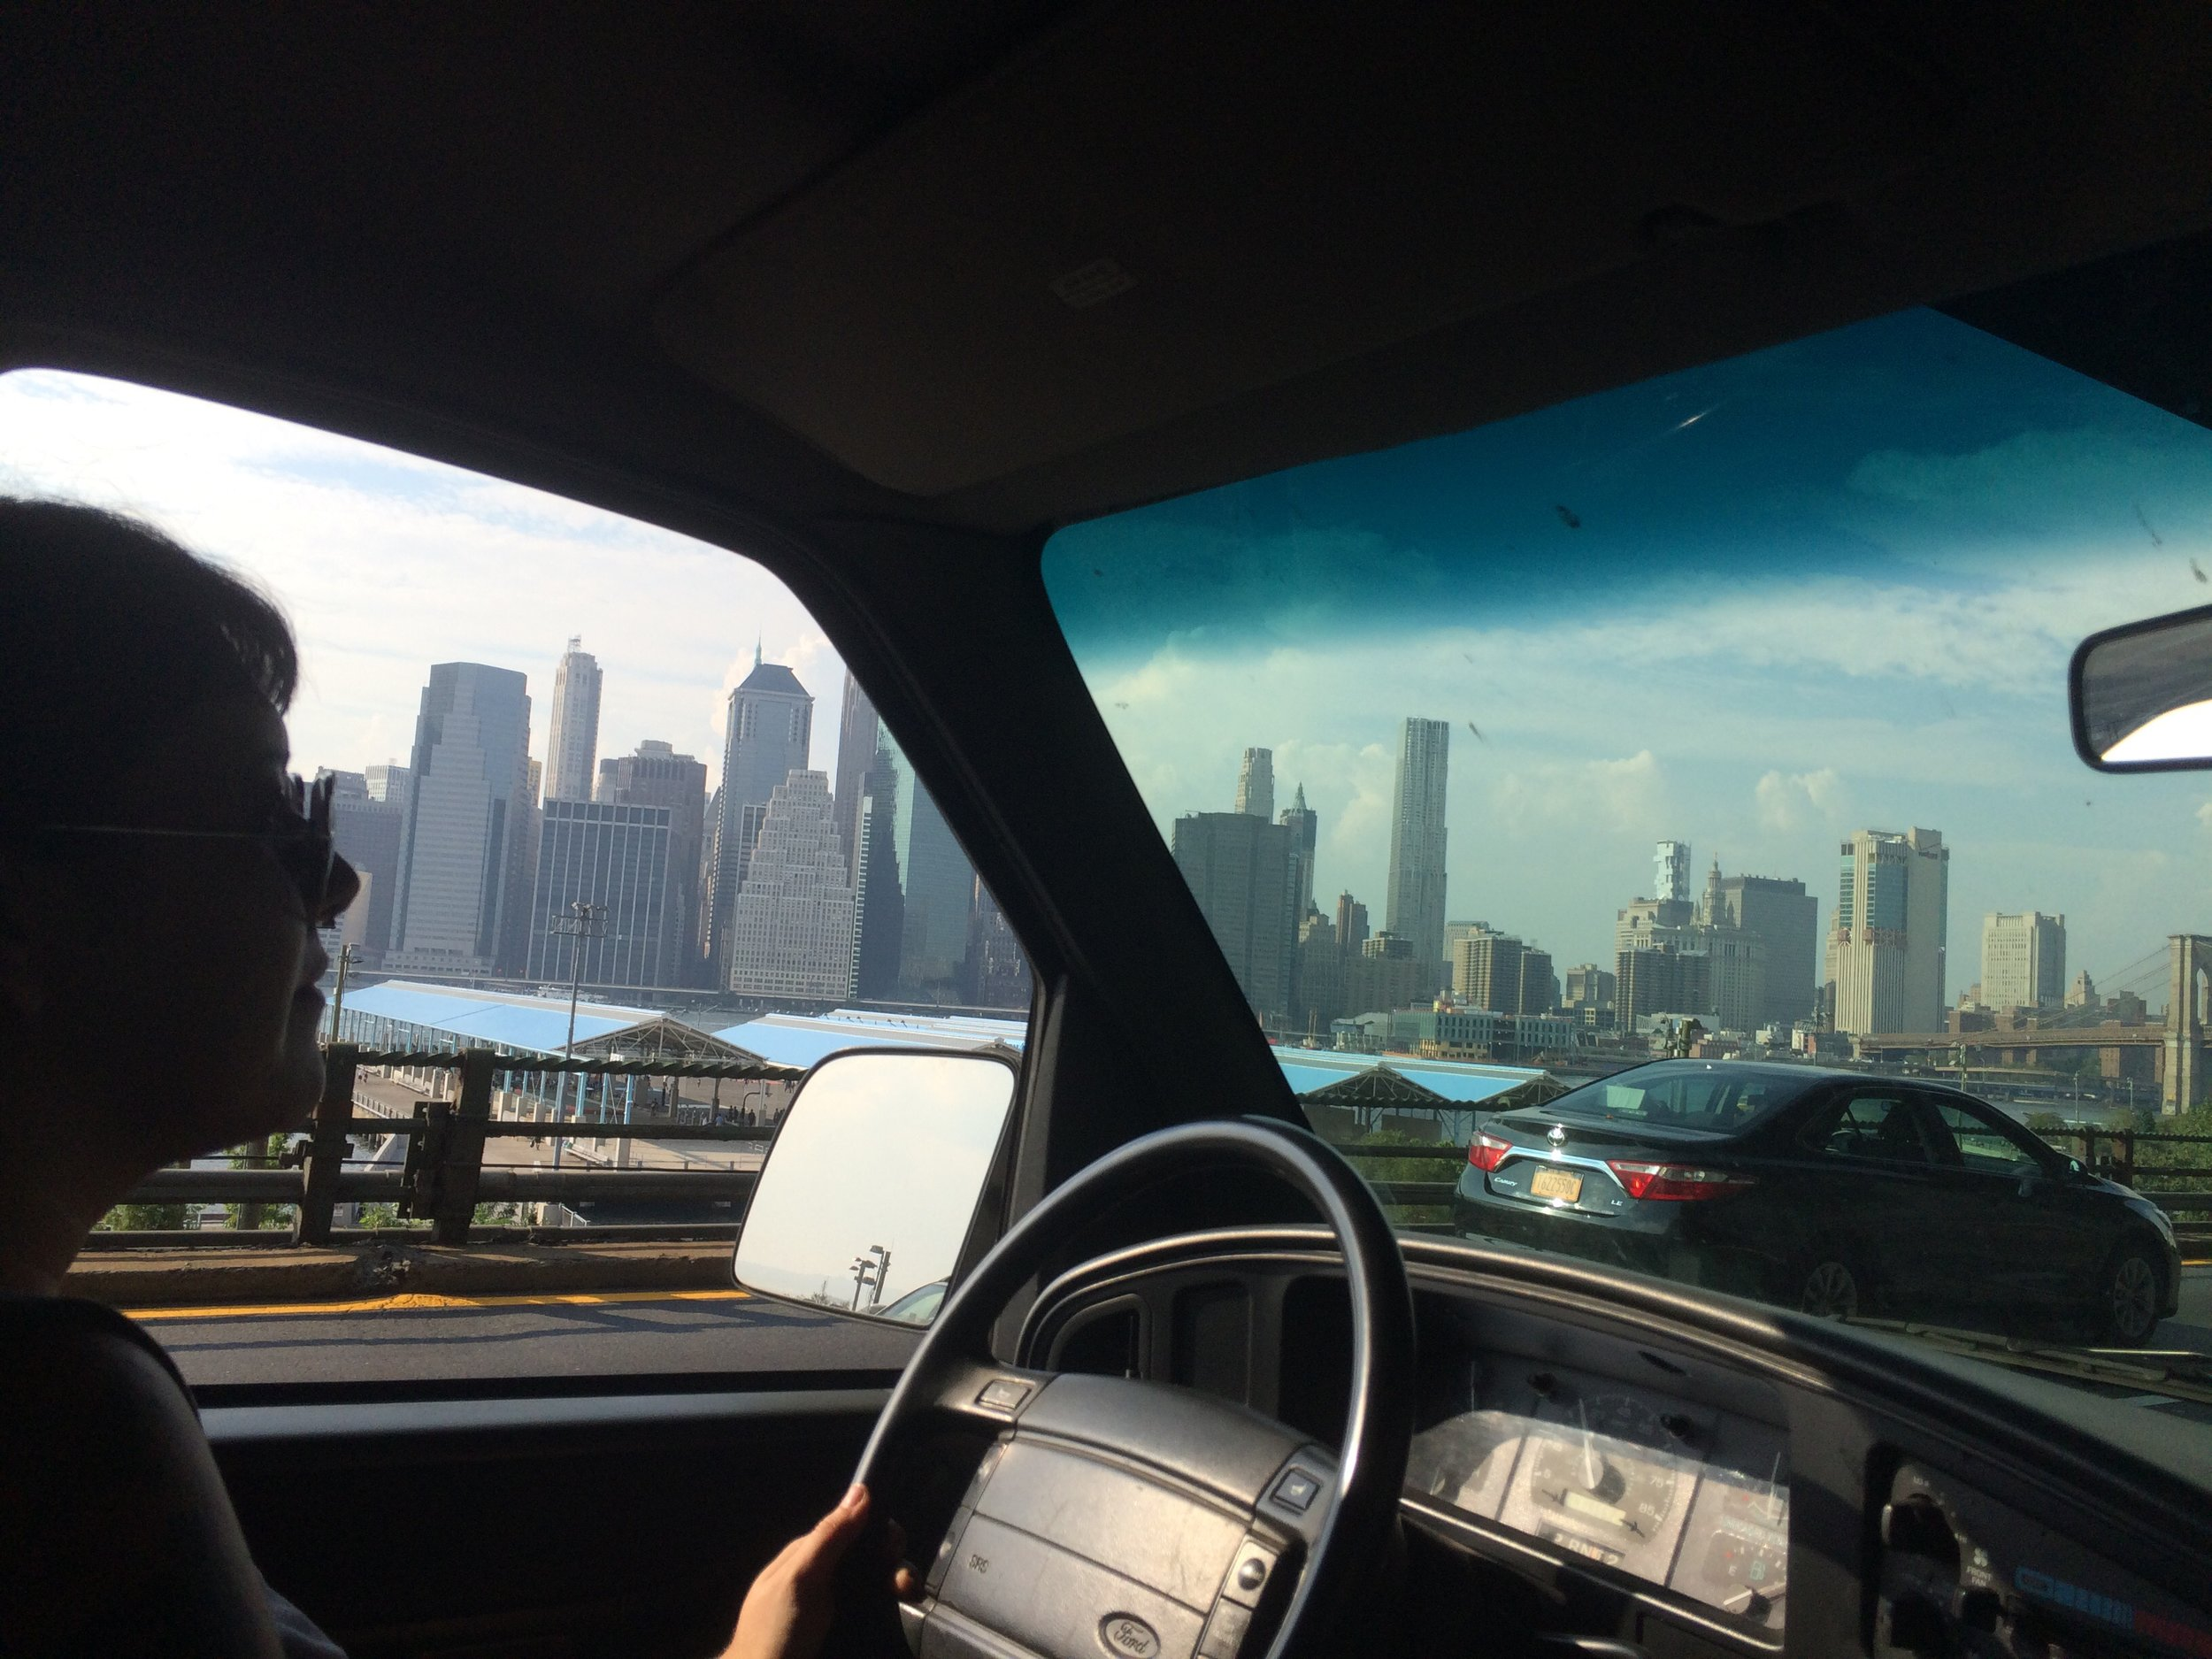 City drivin'. Not in the picture is Rachelle, swearing at honking New Yorkers.